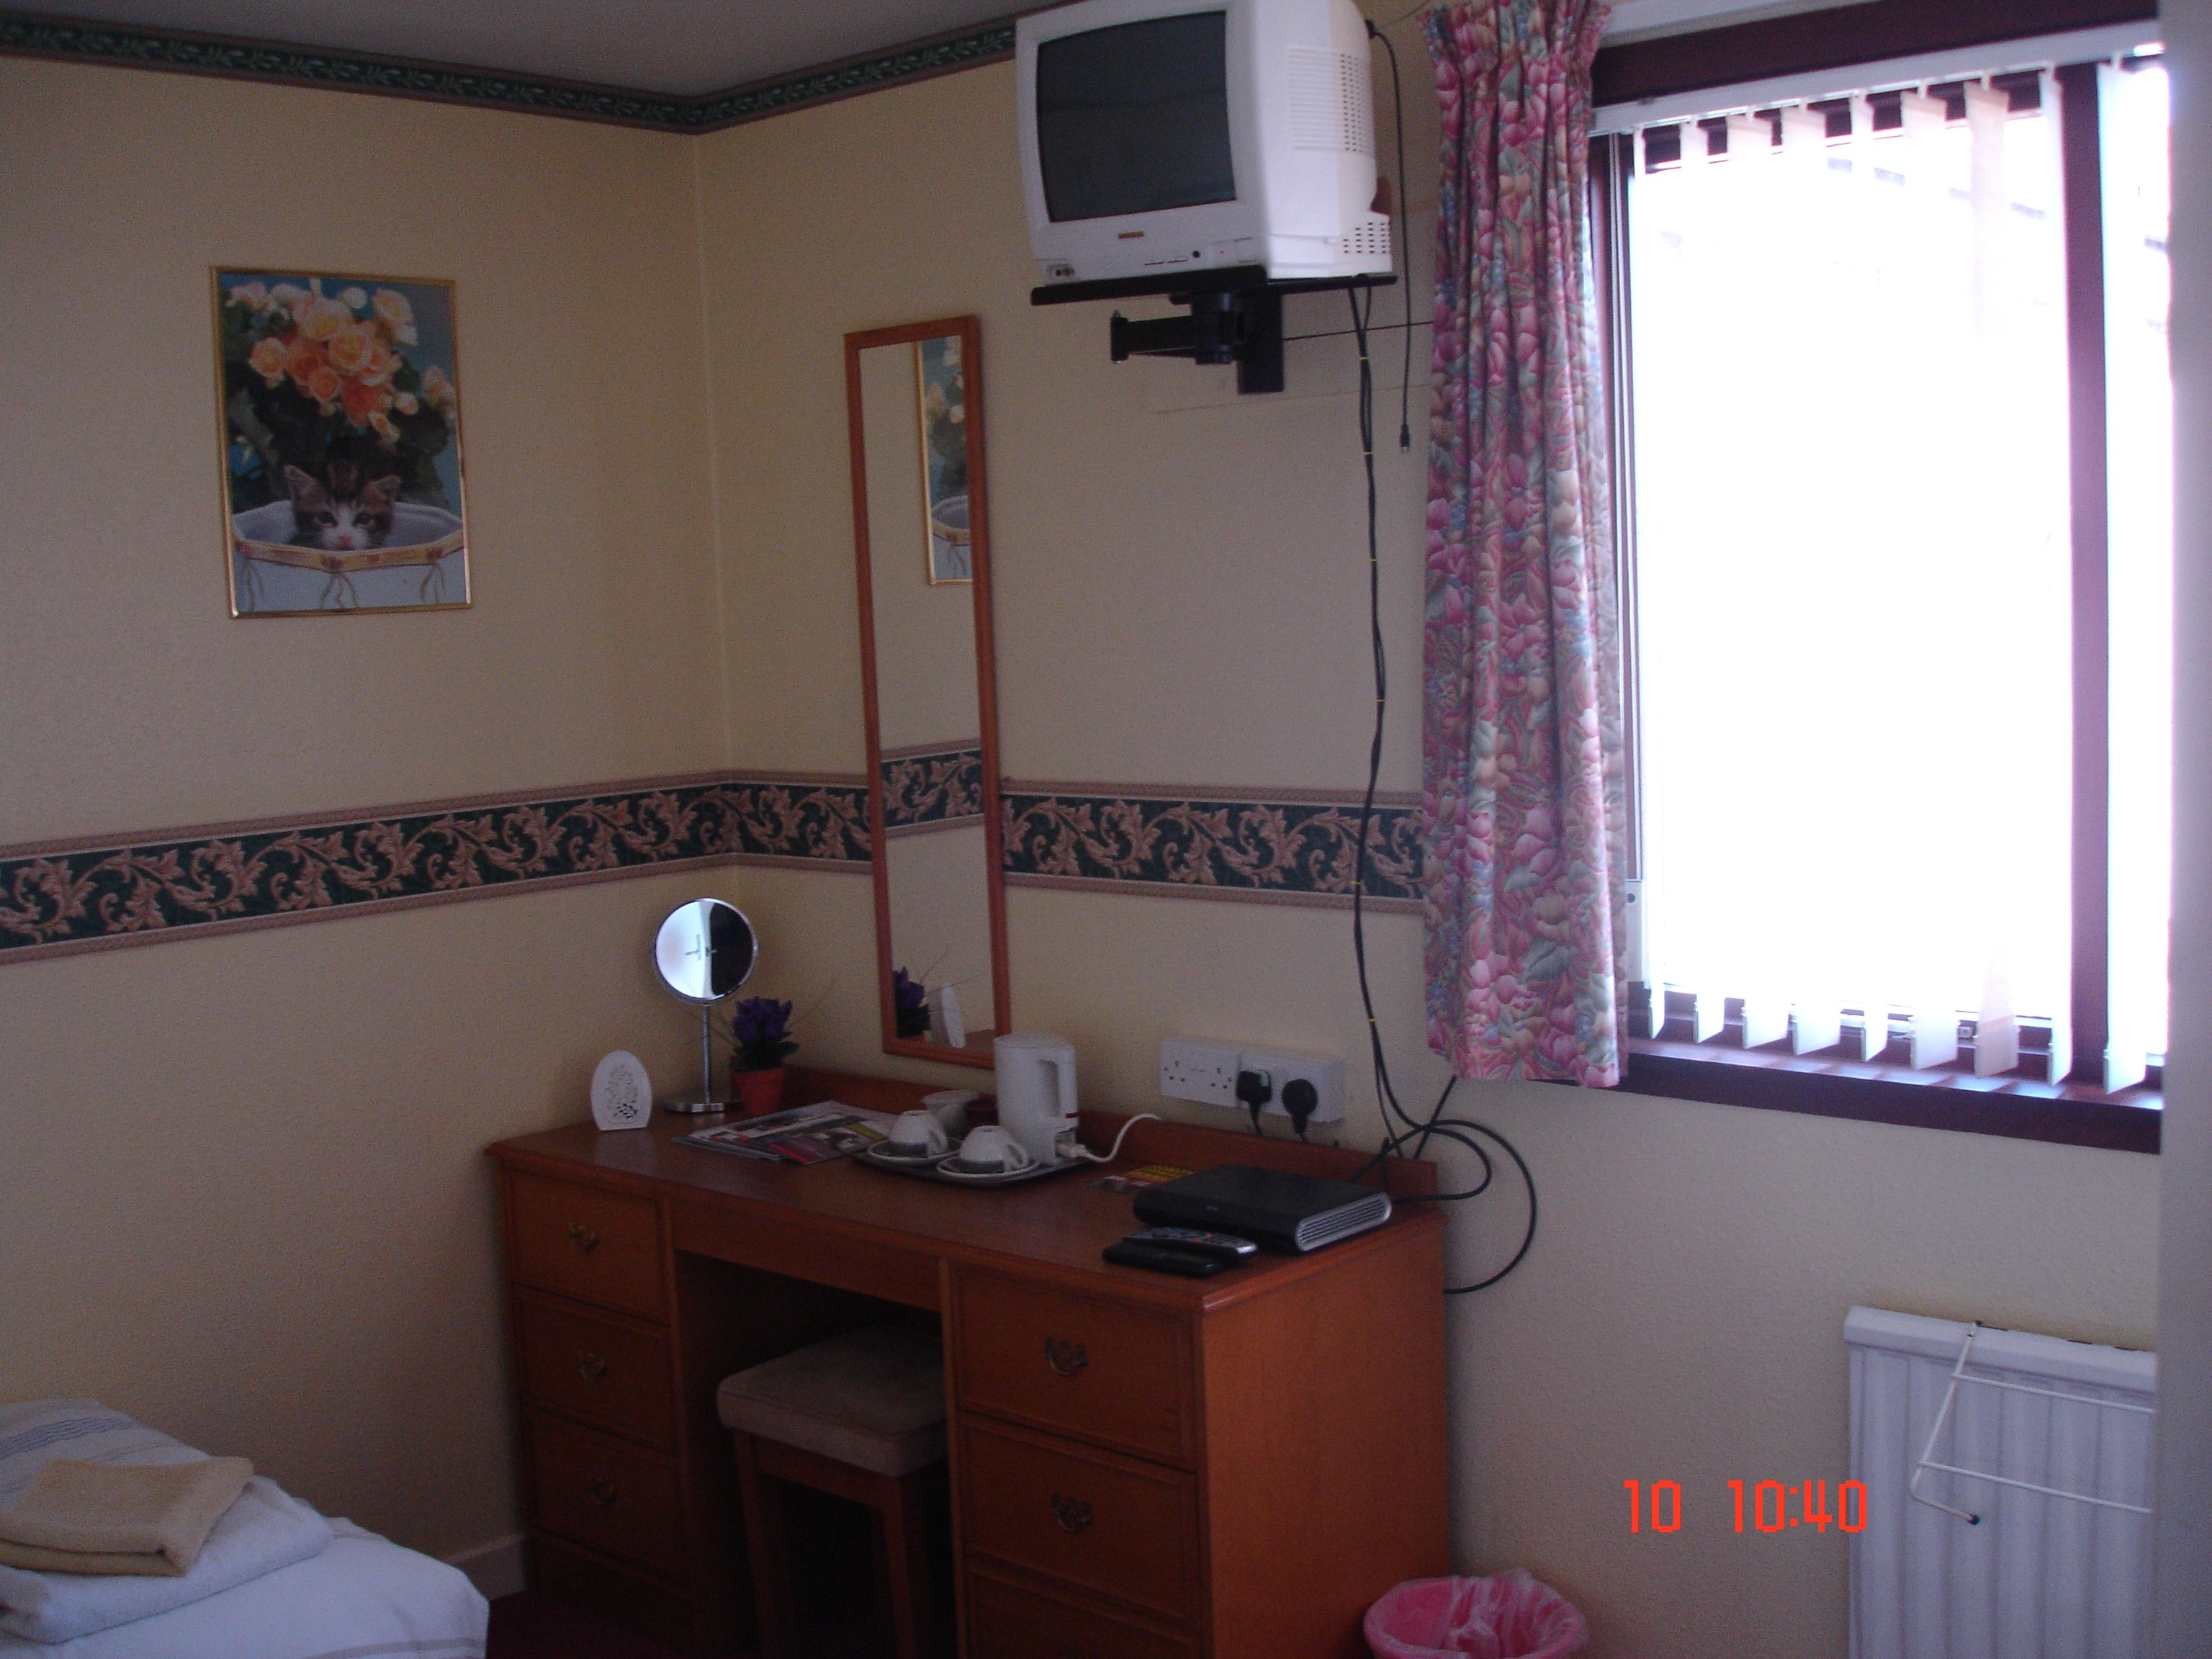 a room with window ,desk , mirror and paintings